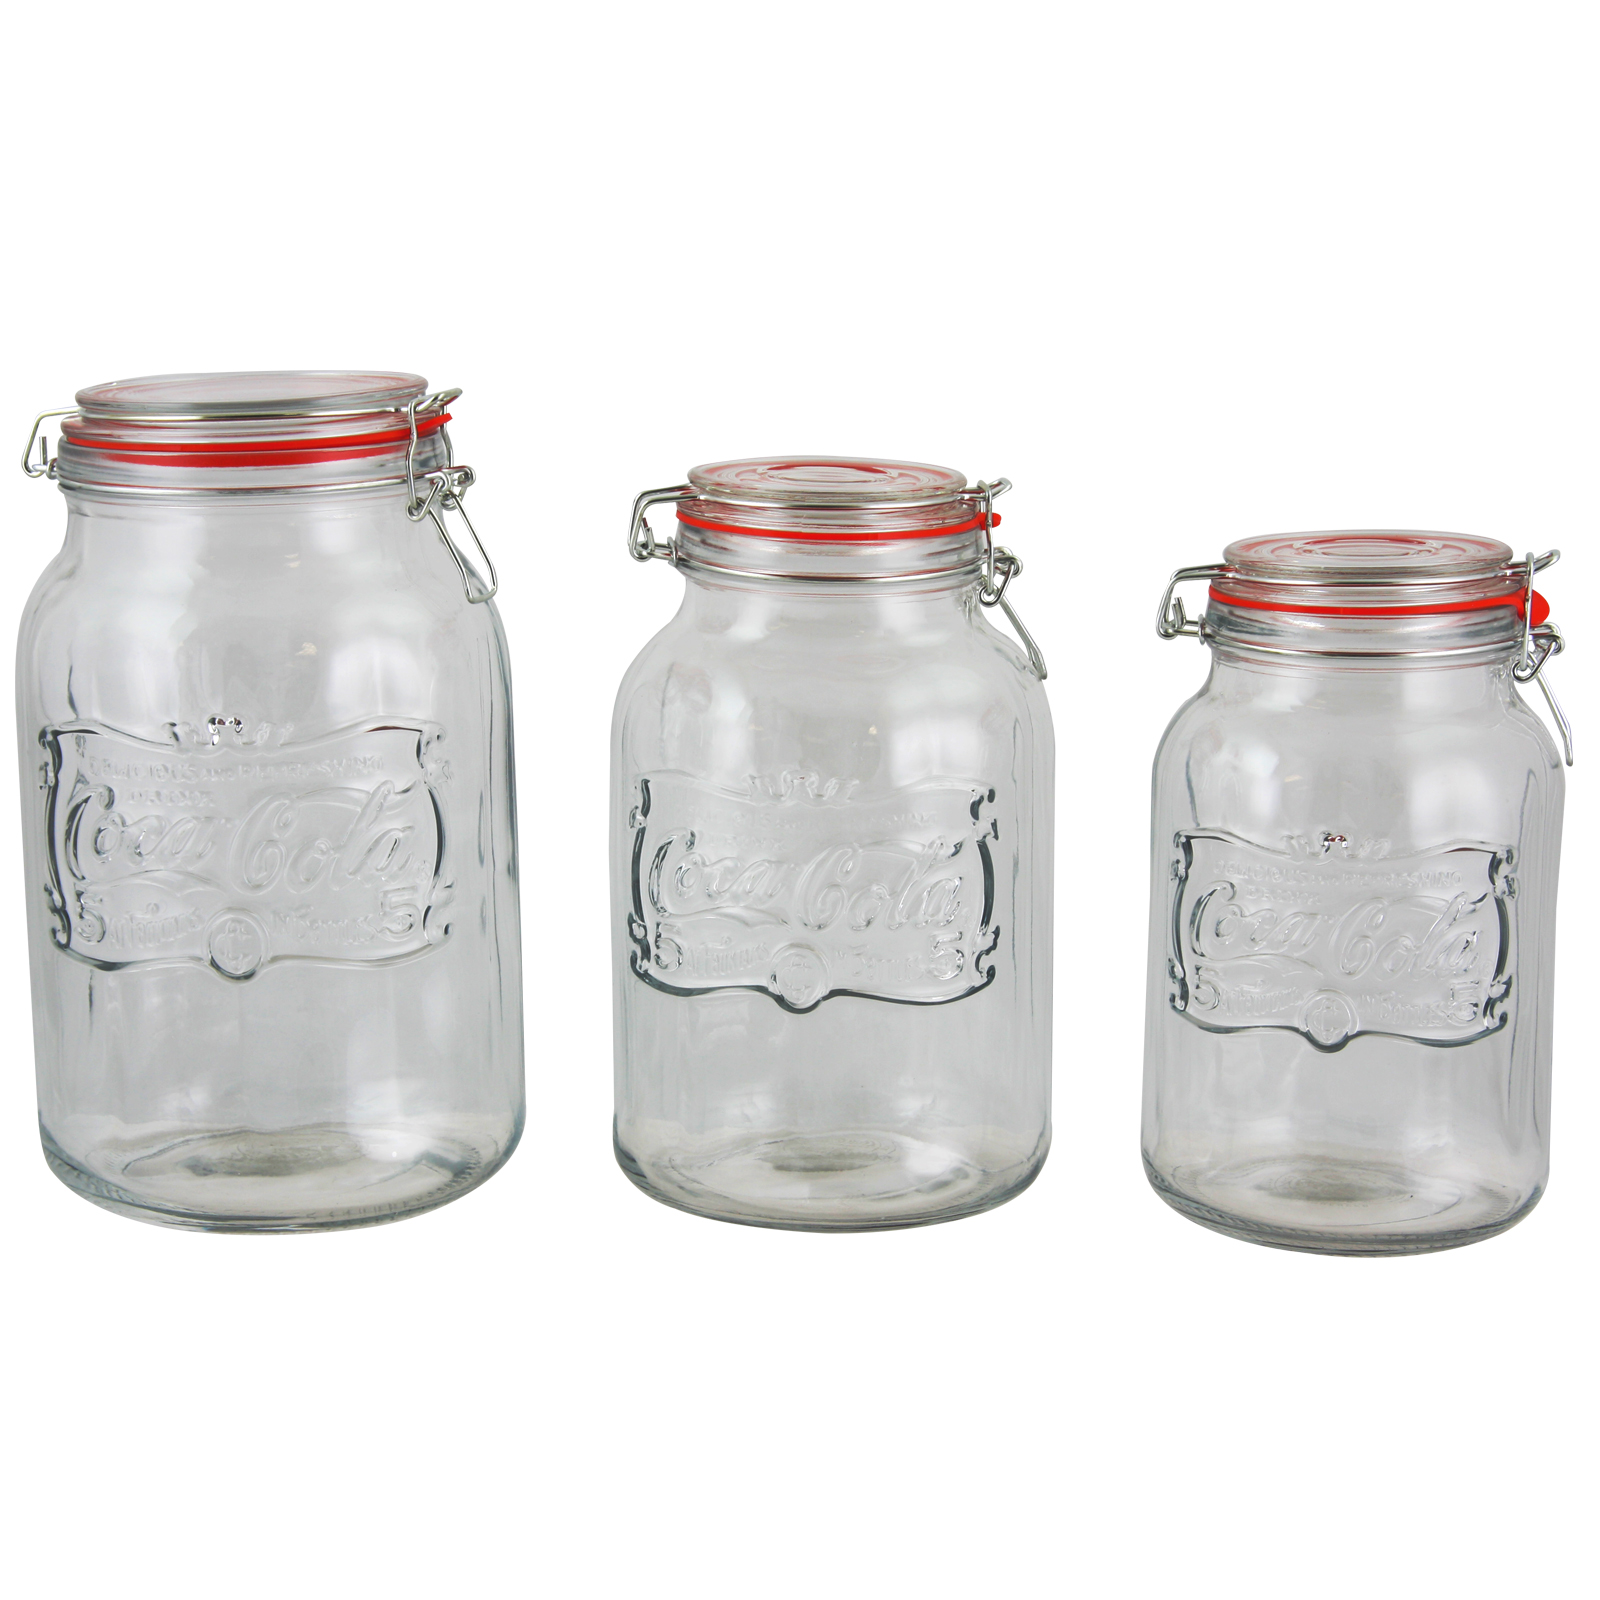 Charmant Coca Cola Country Classic 3 Piece Embossed Glass Preserving/Storage Jar  With Wire Ball